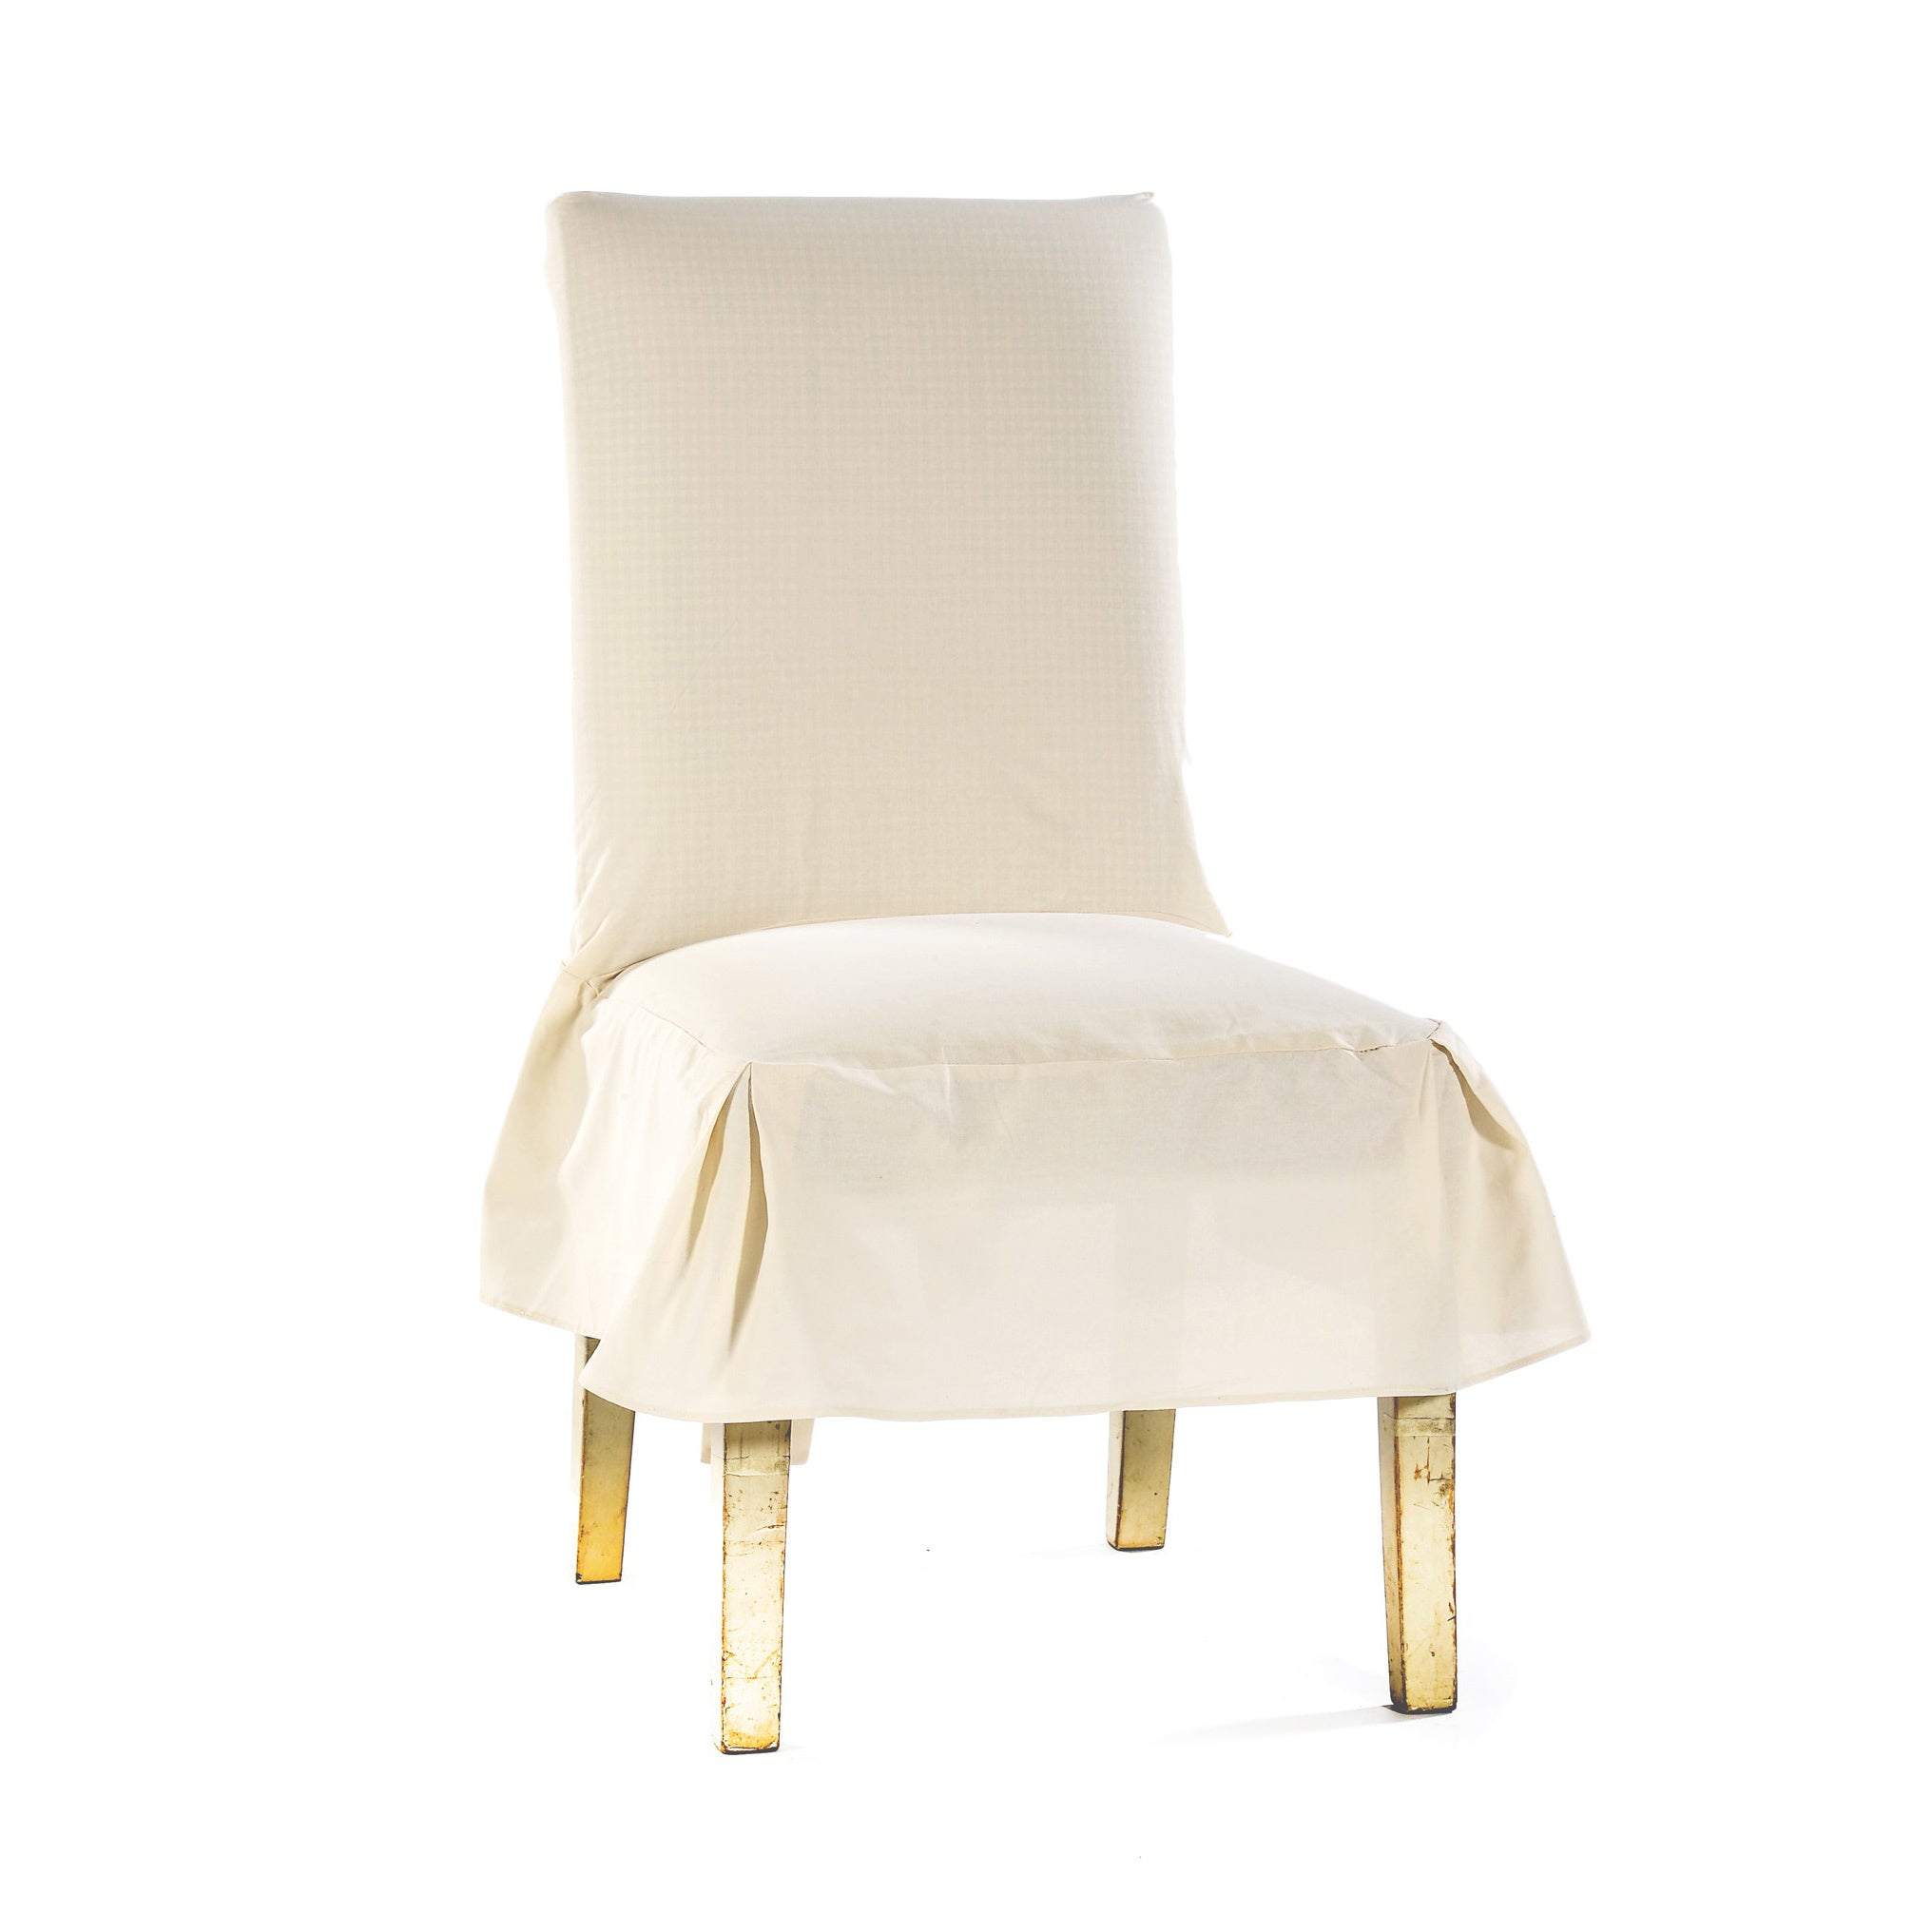 Prime Classic Cotton Duck Dining Chair Slipcovers Set Of 2 Cjindustries Chair Design For Home Cjindustriesco